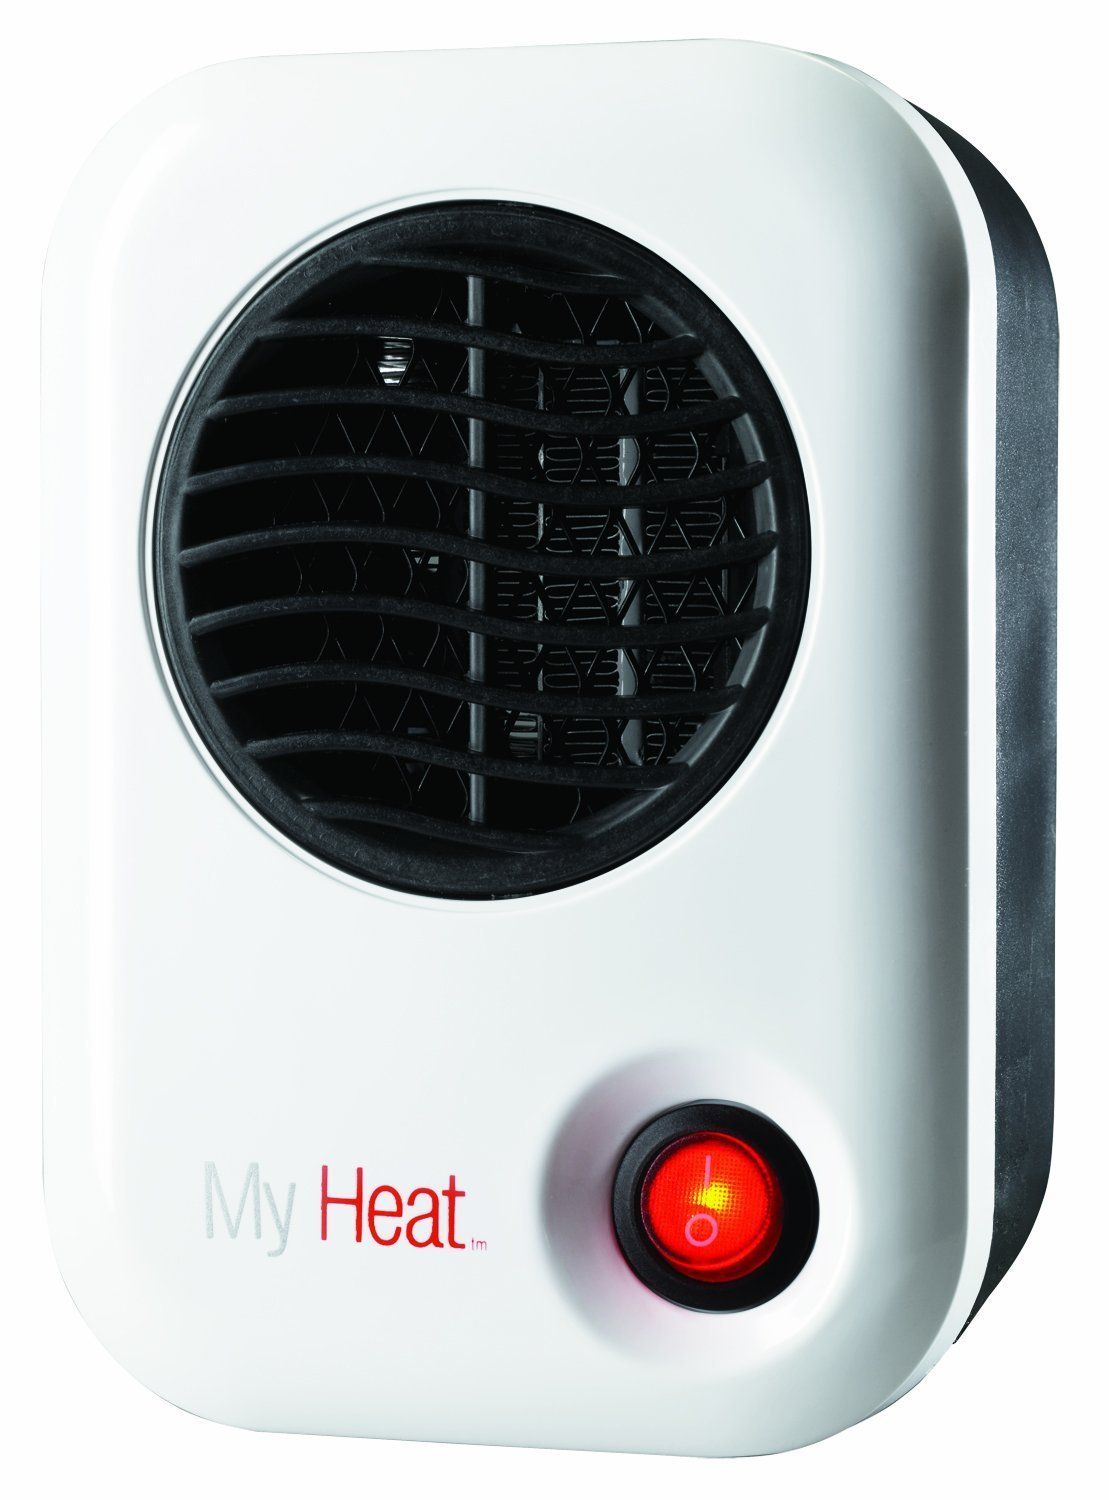 Lasko 101 My Heat Personal Heater